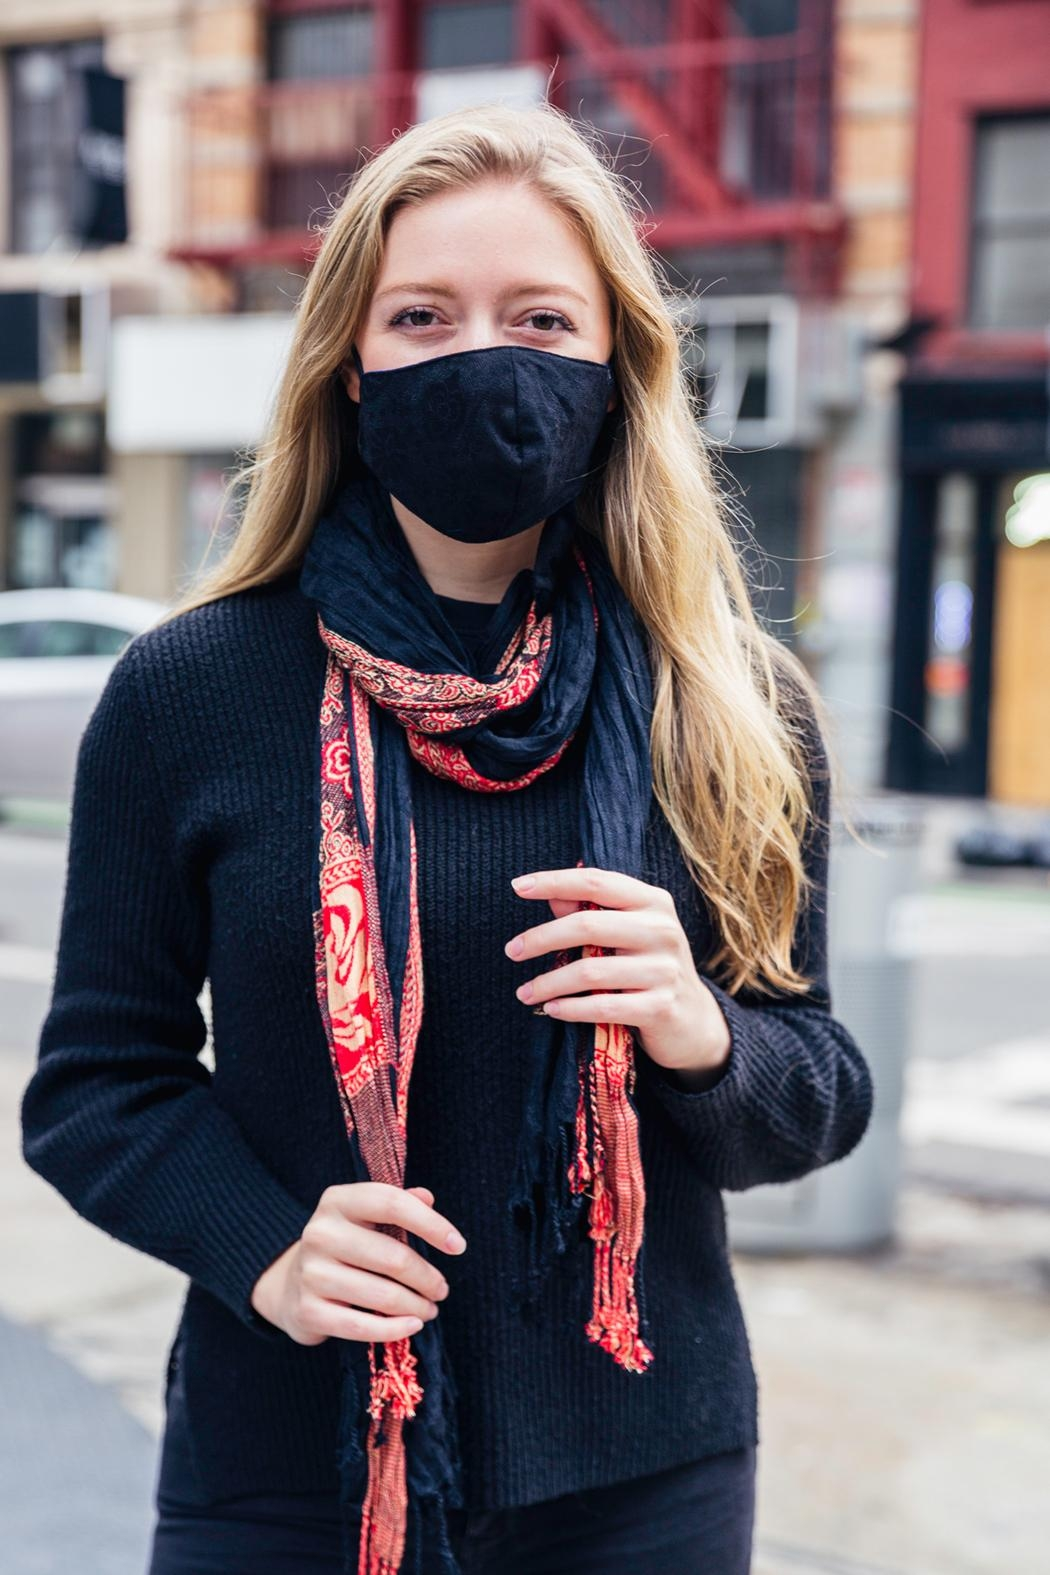 Young Threads Scarf With Mask(cotton Lining) Set. Removable Scarf Secured With Button Closure. Perfect For Colder Days, Triple Layer, Adjustable Strap - Main Image